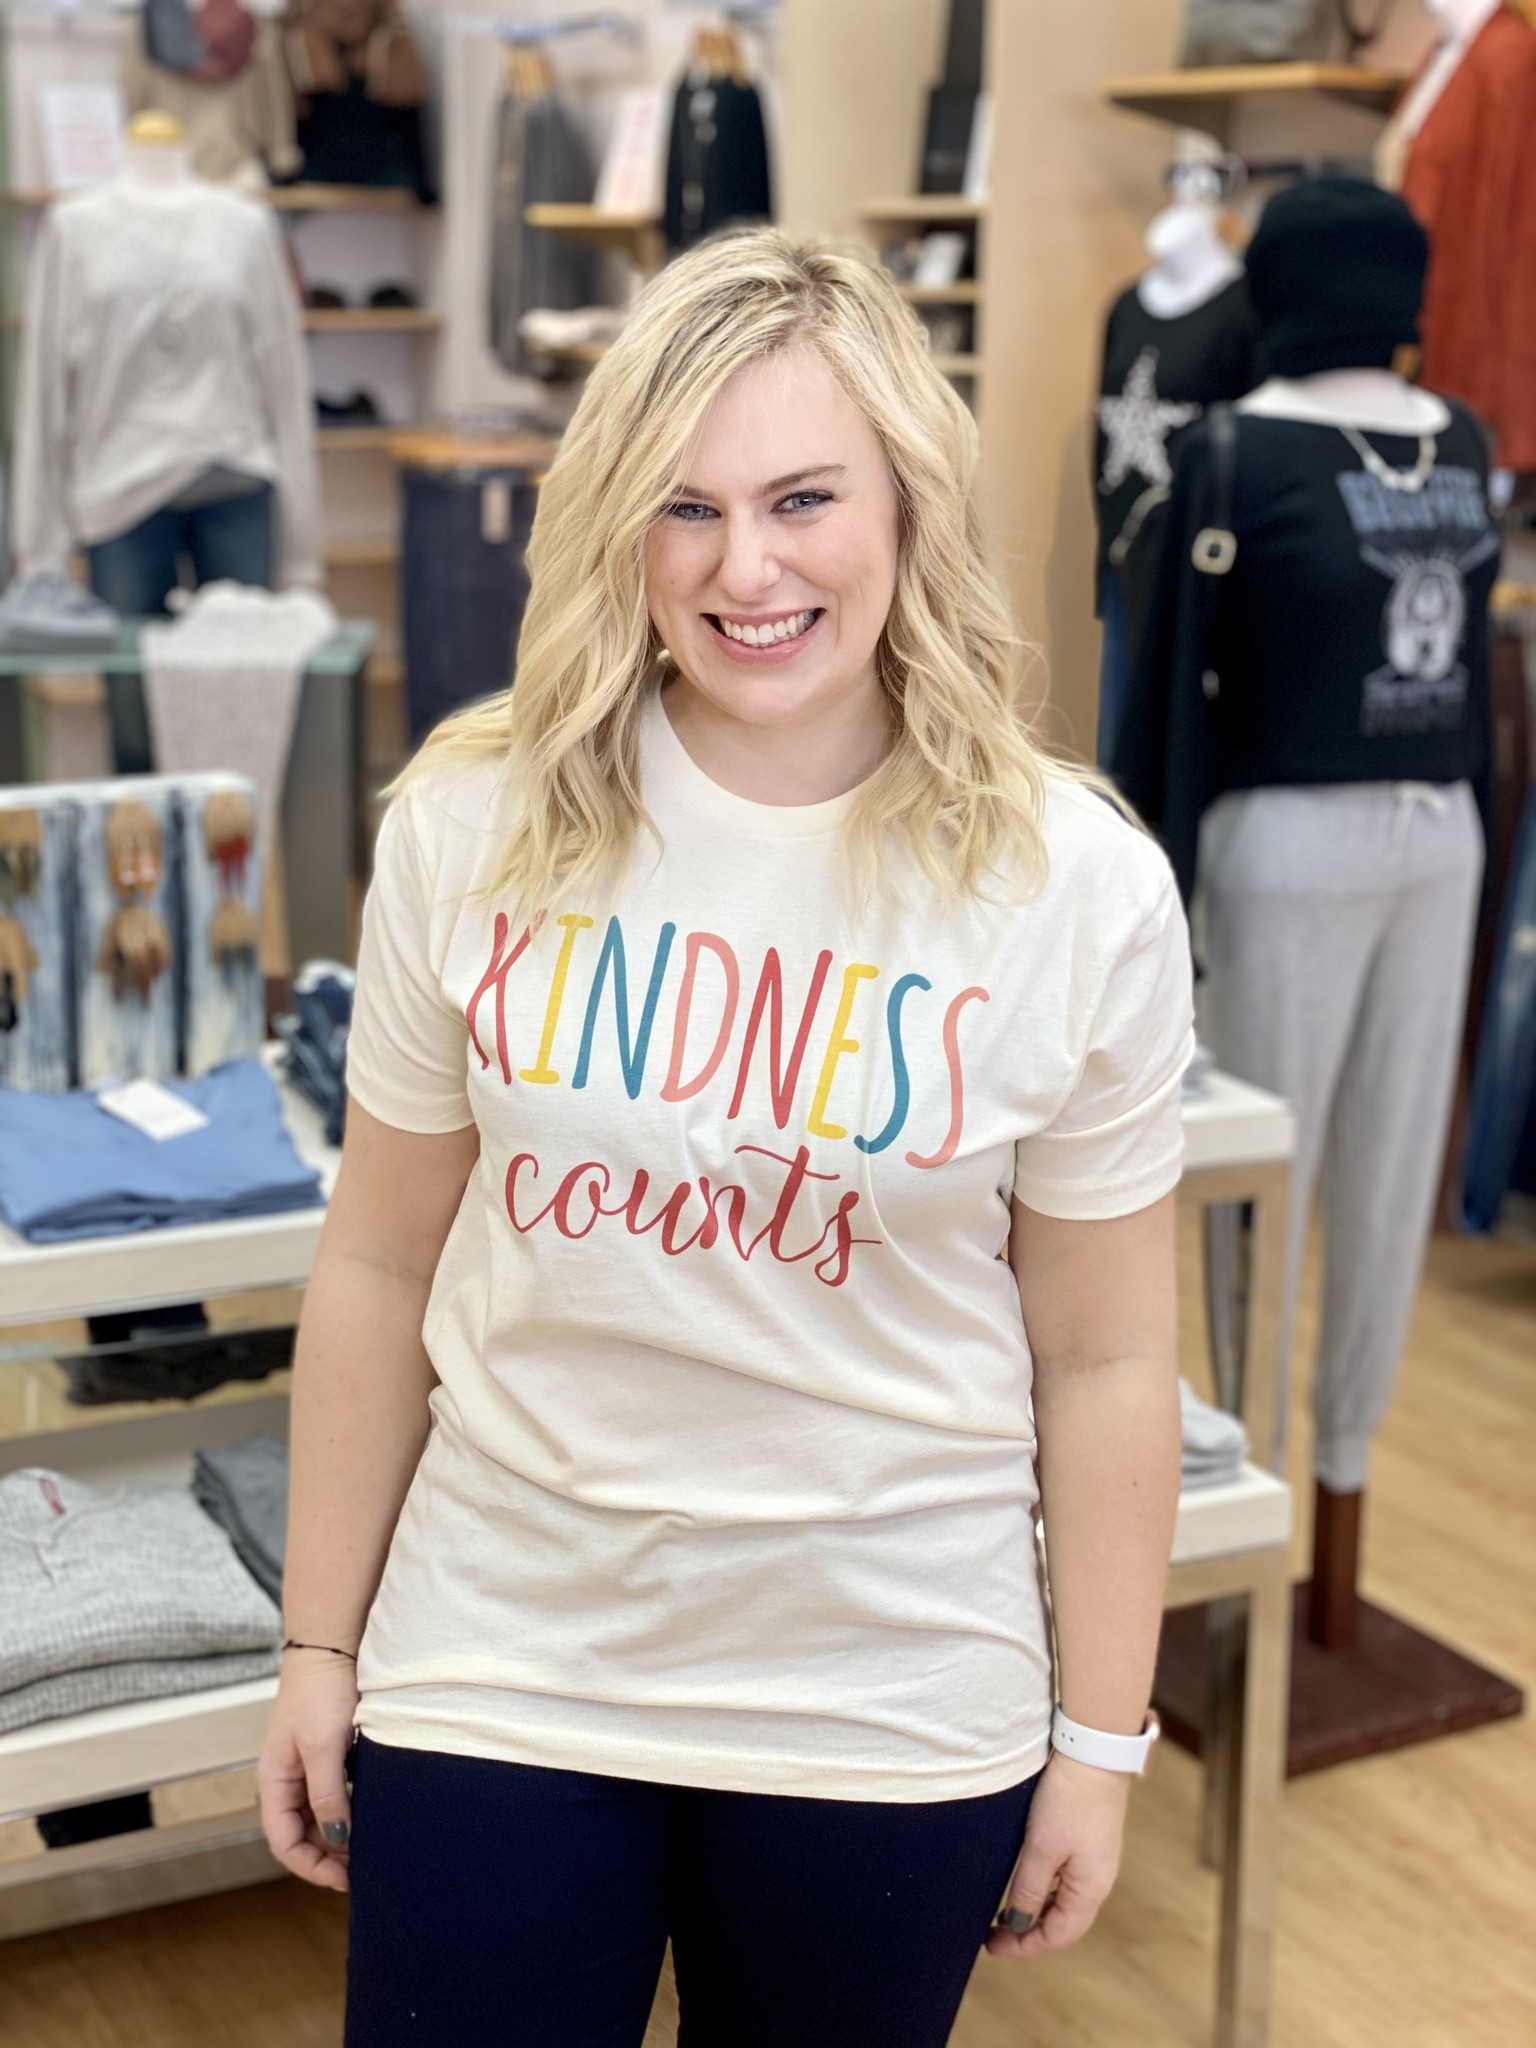 Kissed Apparel Kindness Counts Graphic Tee